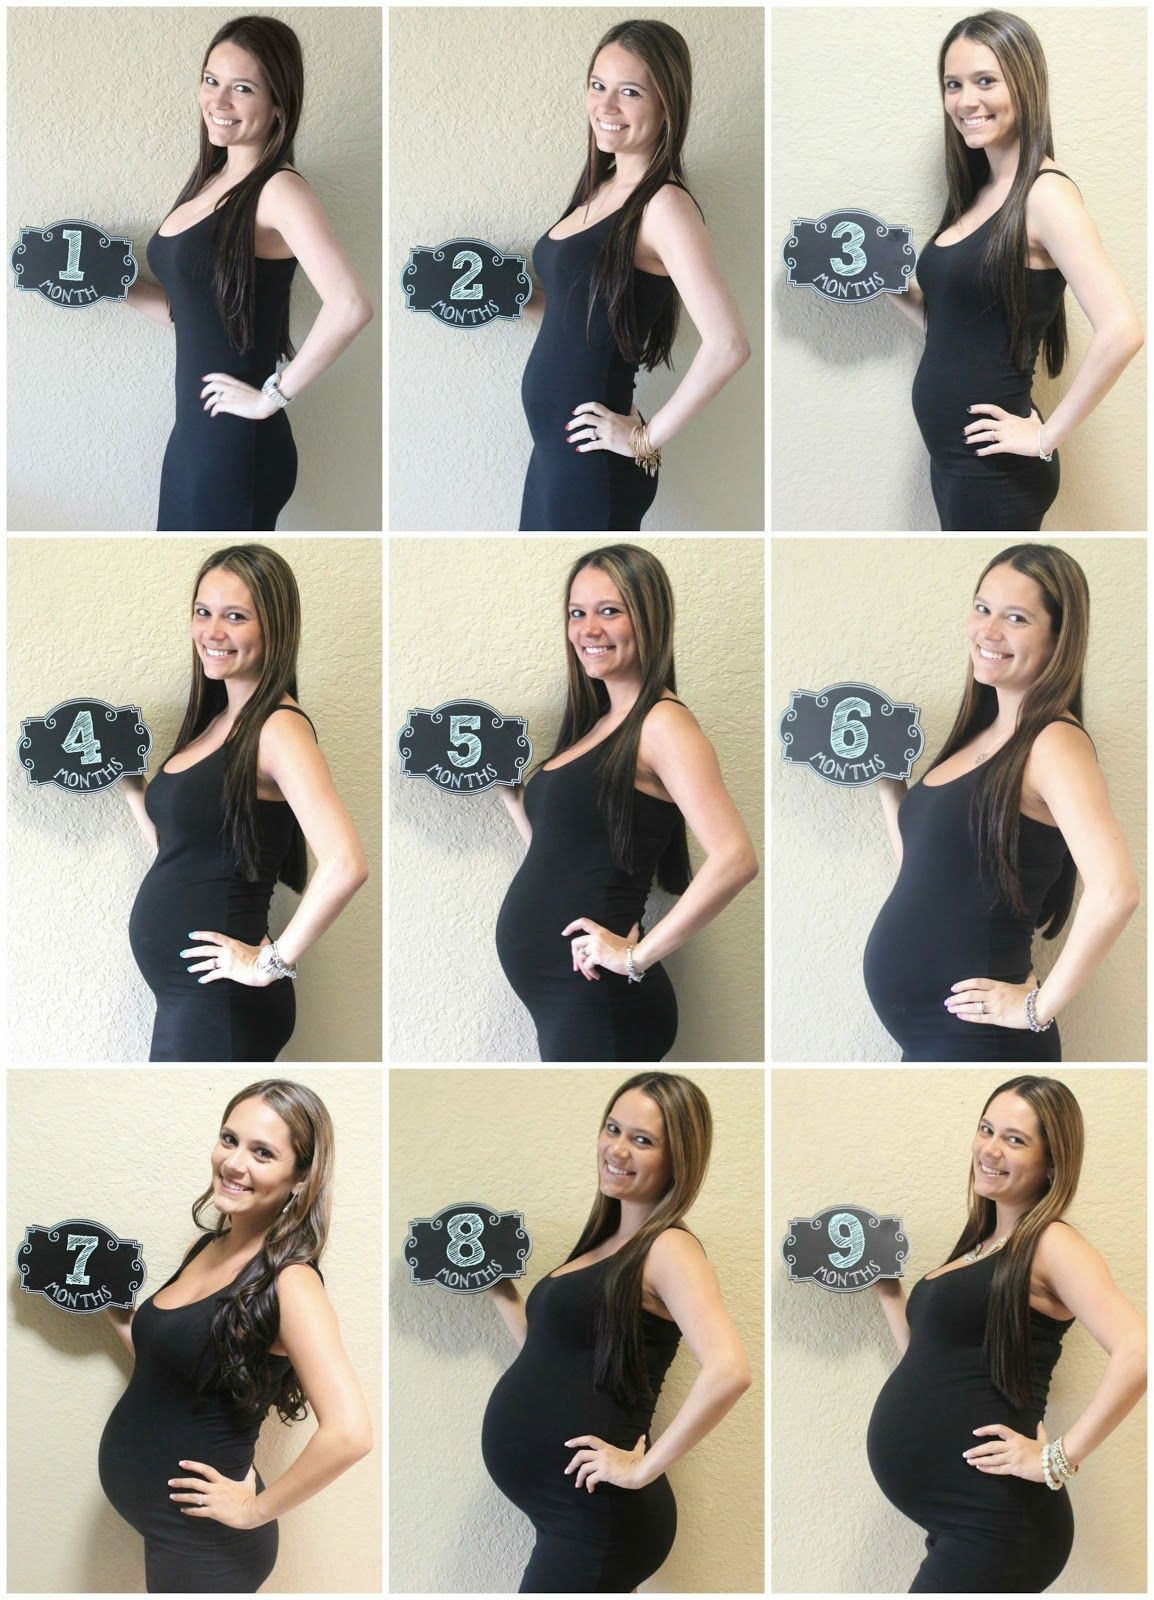 This makes me feel better about my bump growth clearly for The woman in number 6